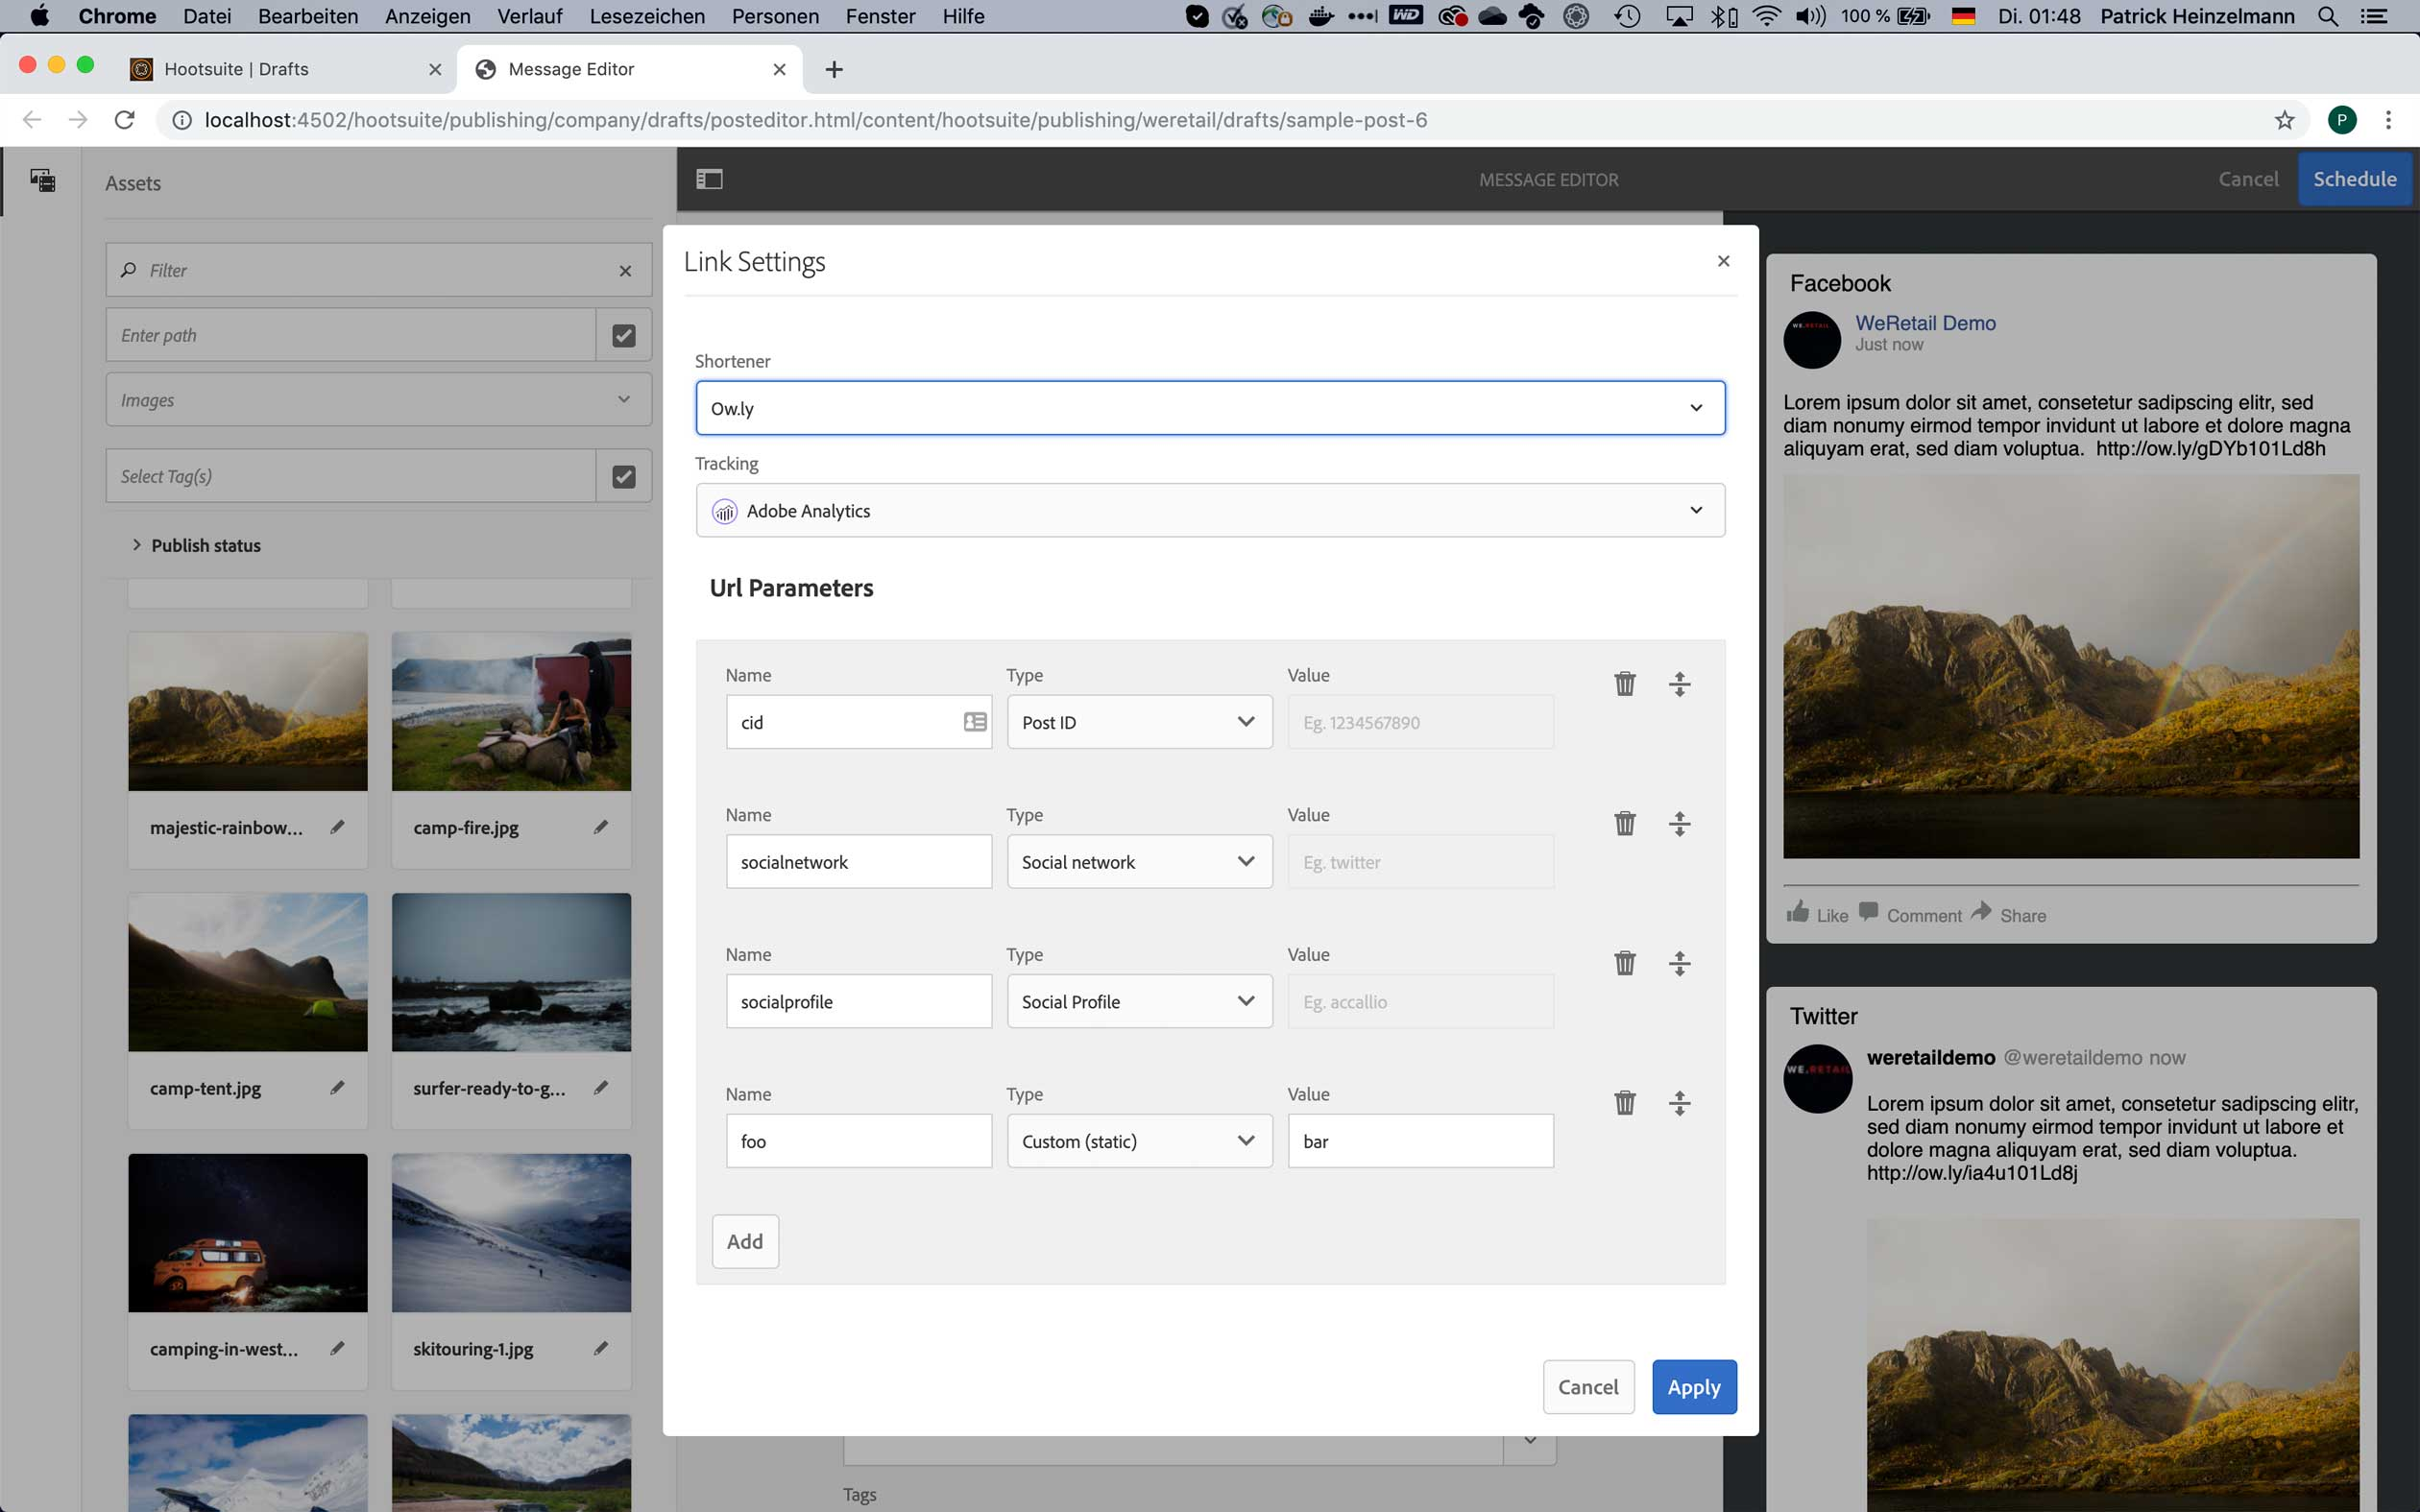 Tracking parameters or link shortening services can be added to URLs in social posts